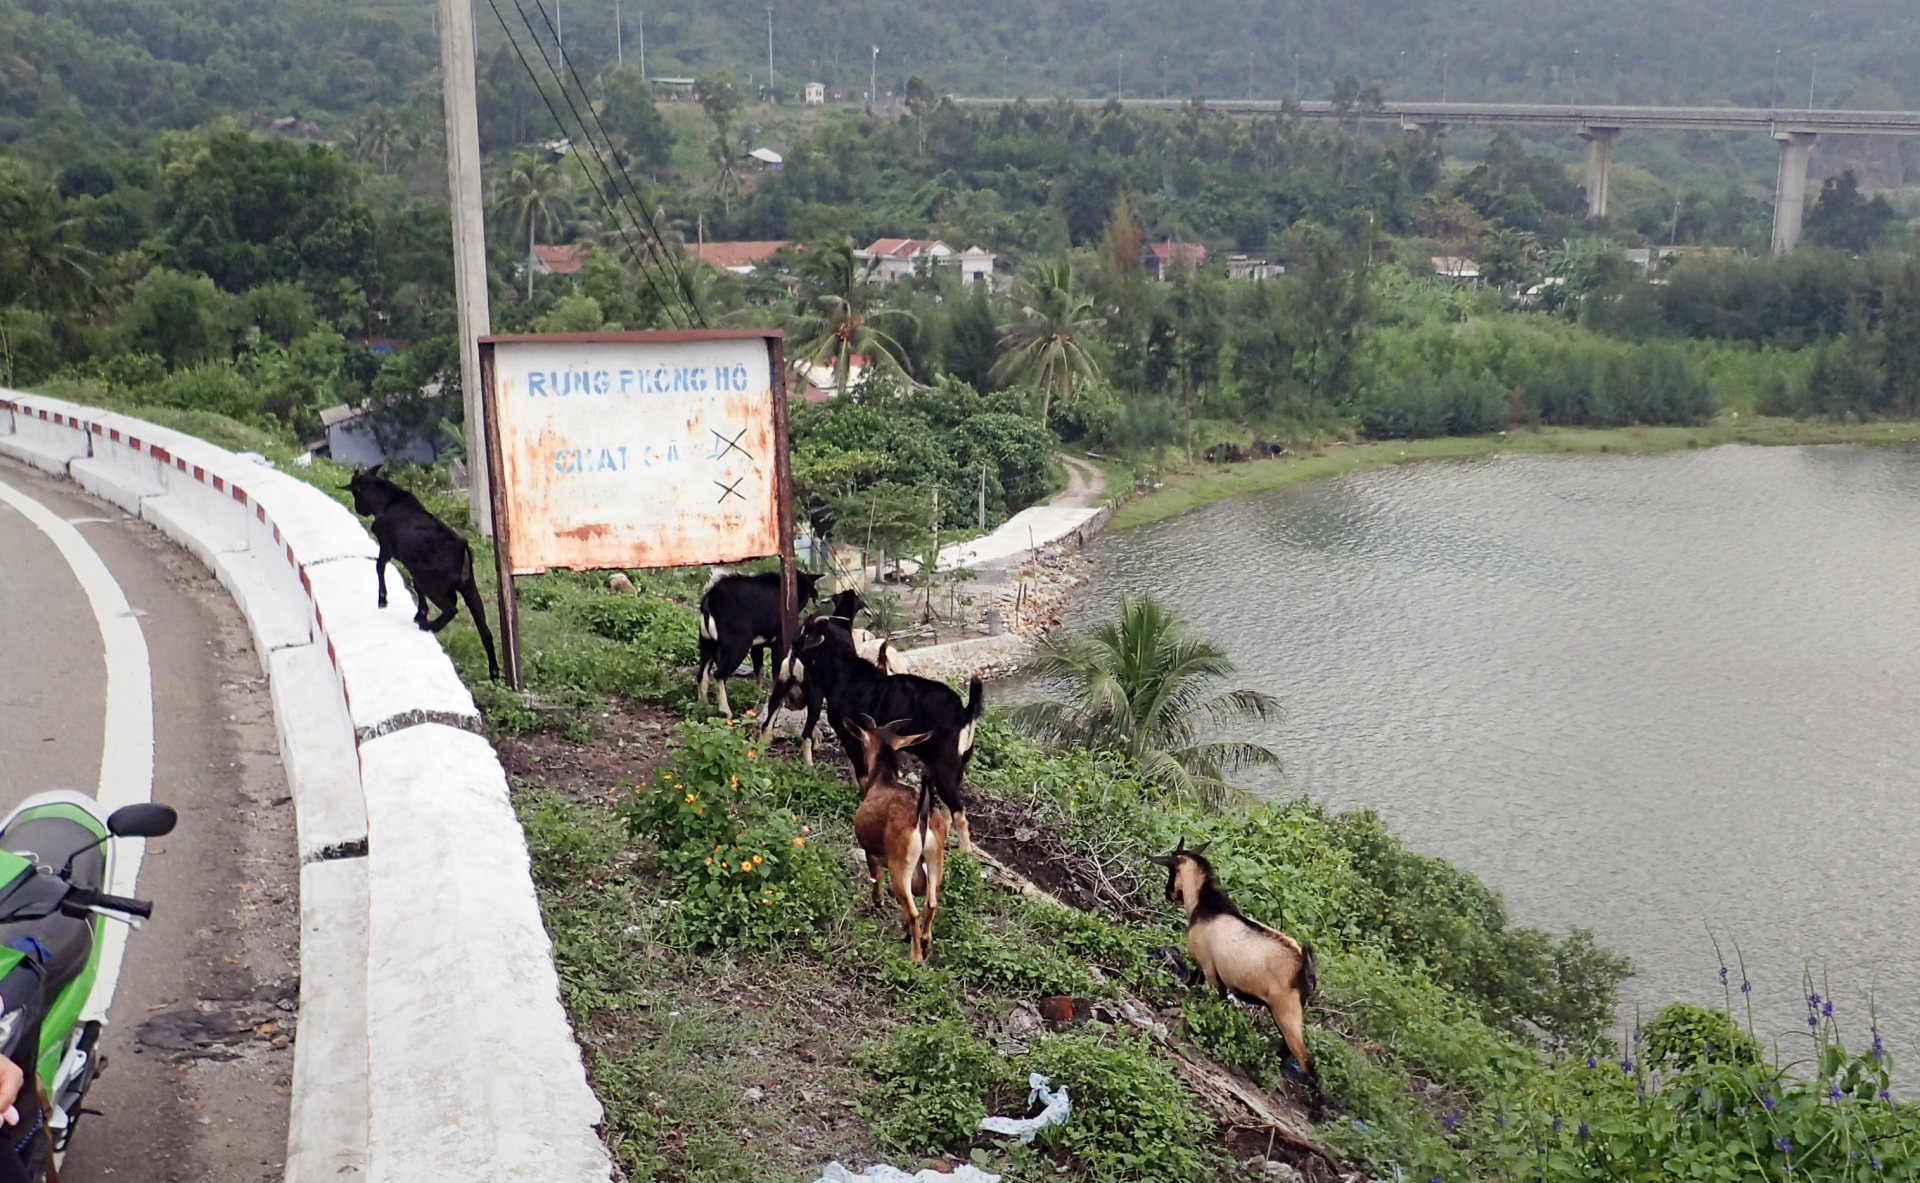 goats along the highway overlooking a beautiful lake